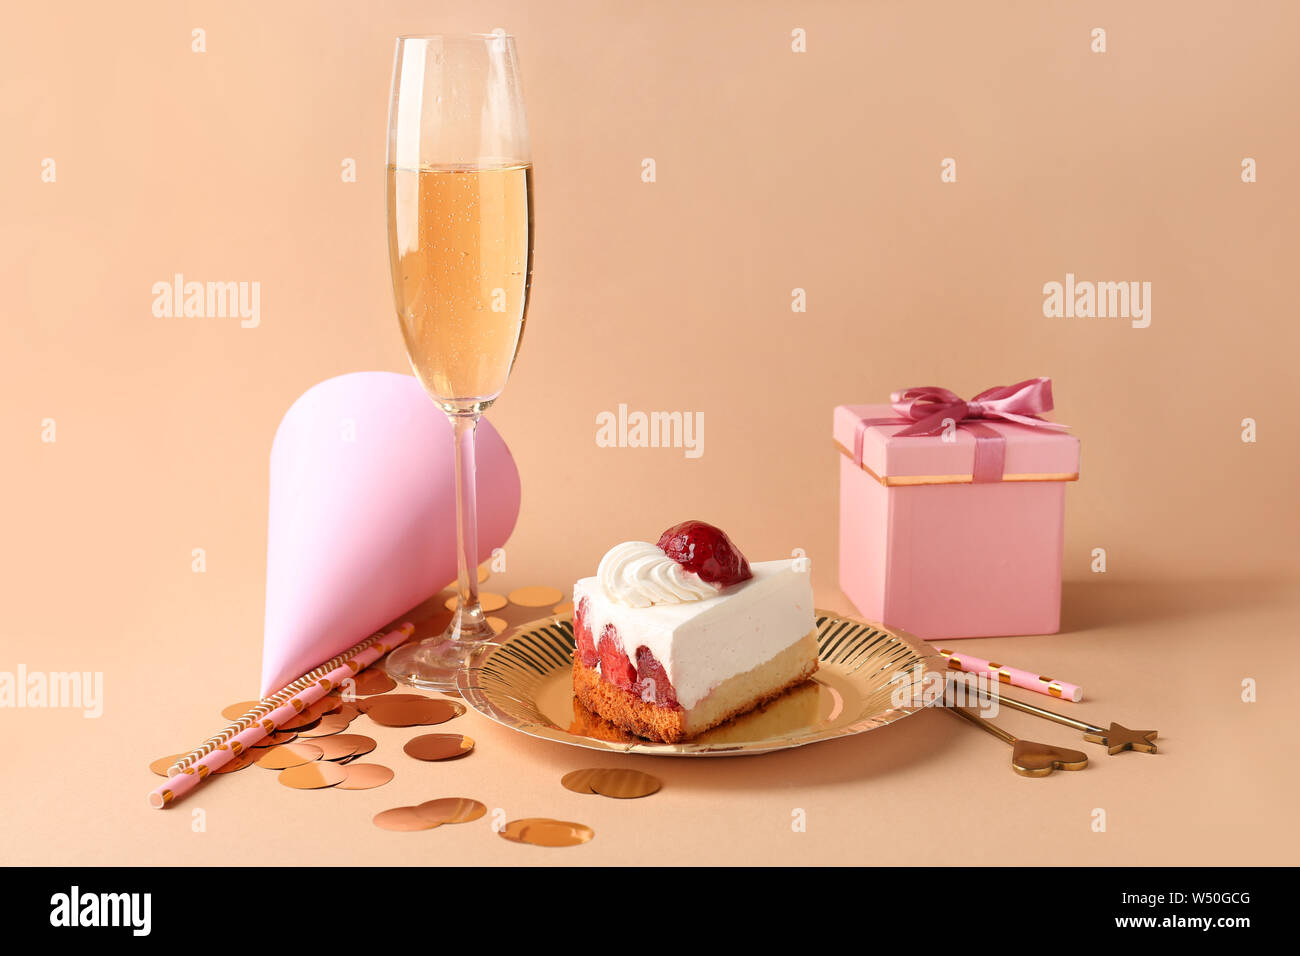 Excellent Plate With Birthday Cake T Box And Glass Of Champagne On Color Funny Birthday Cards Online Hetedamsfinfo